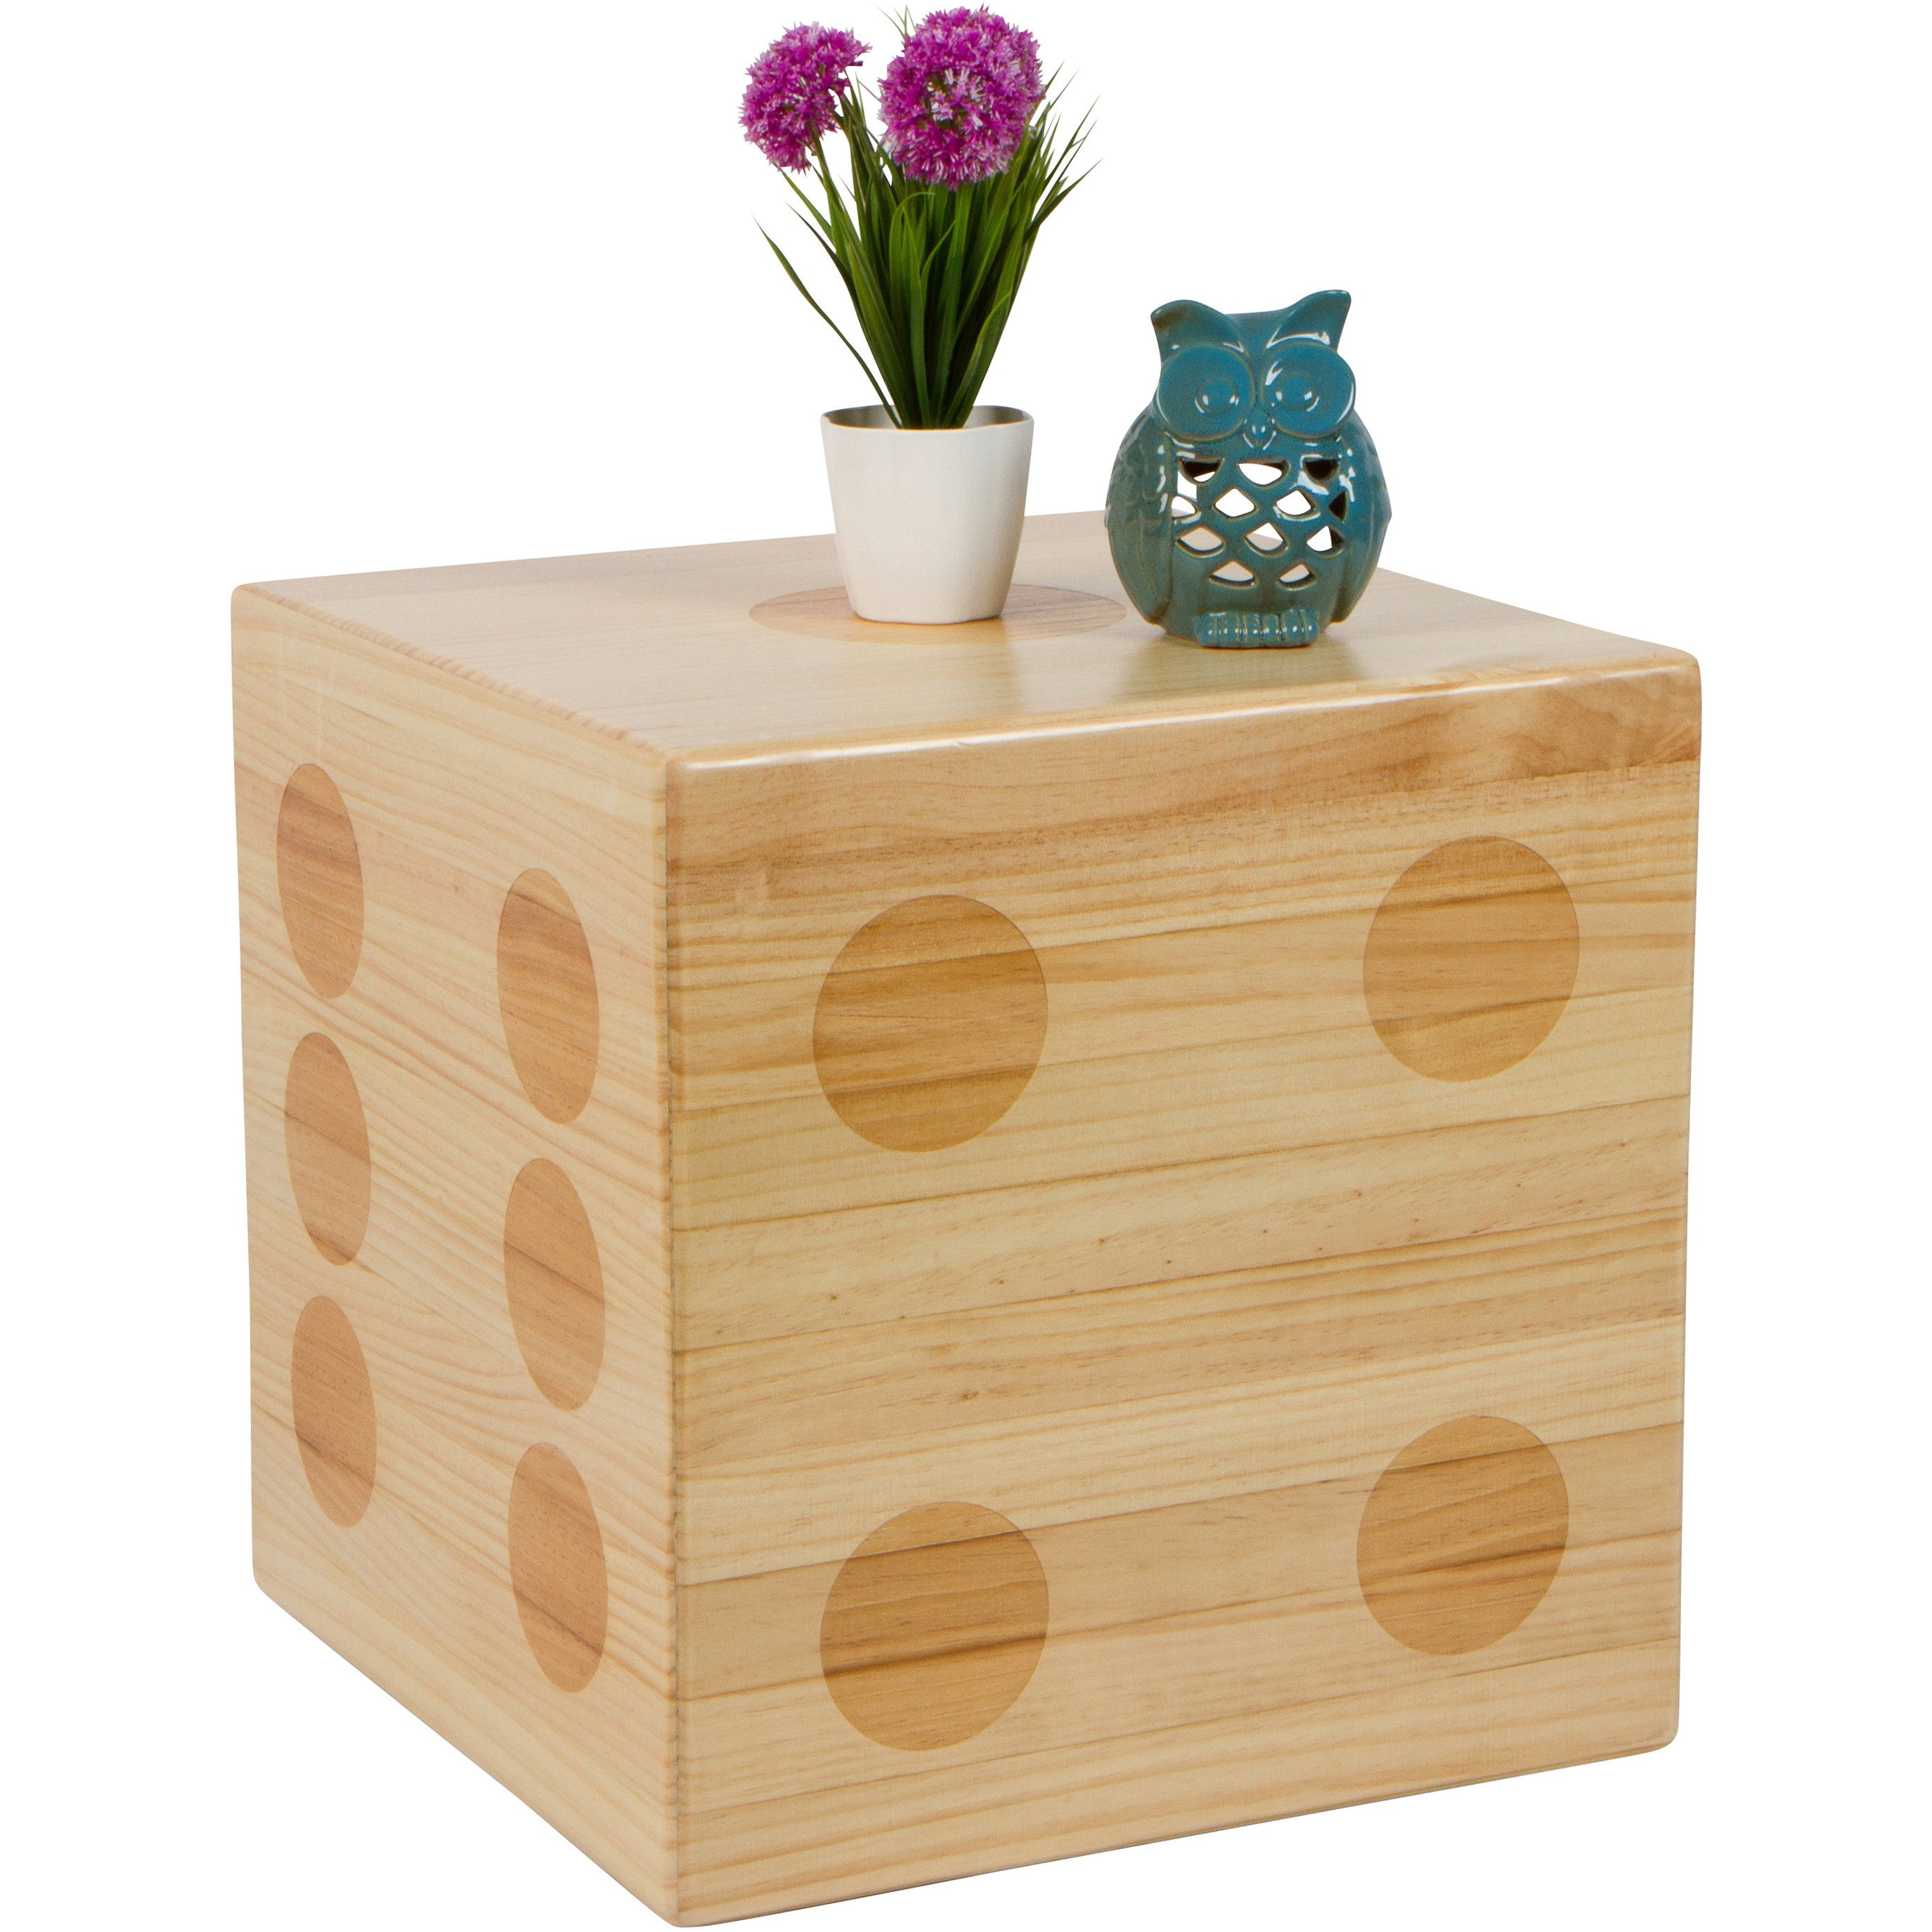 trademark innovations pine wood square inch dice accent table and footstool uttermost free shipping today cut crystal lamp single wine rack modern sofa side dorm room ping pottery